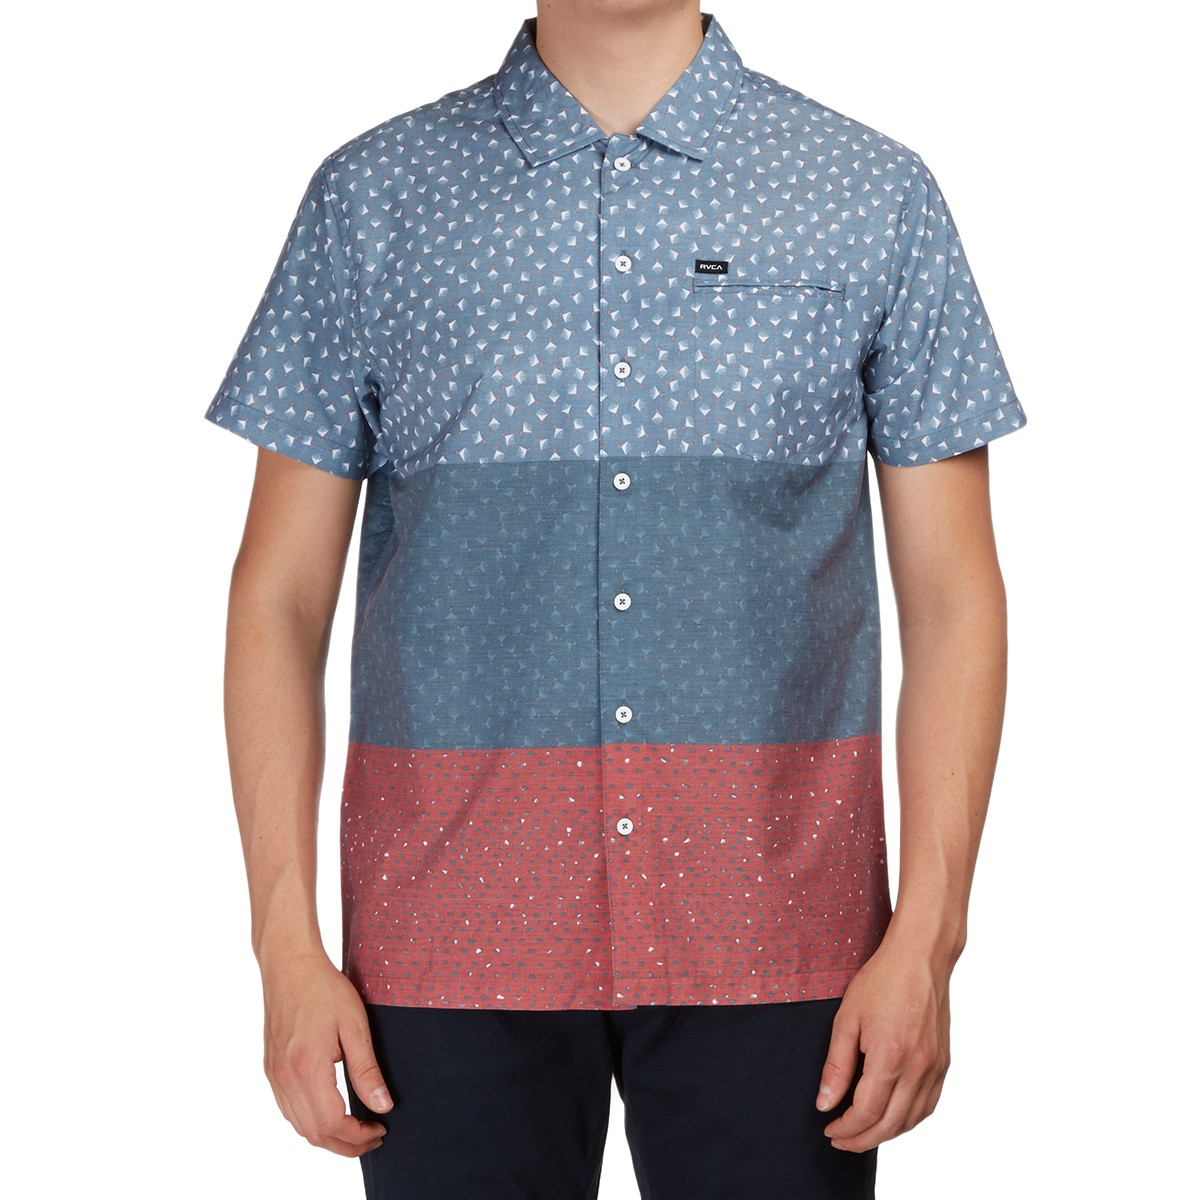 RVCA Triple Short Sleeve Shirt - Dark Denim